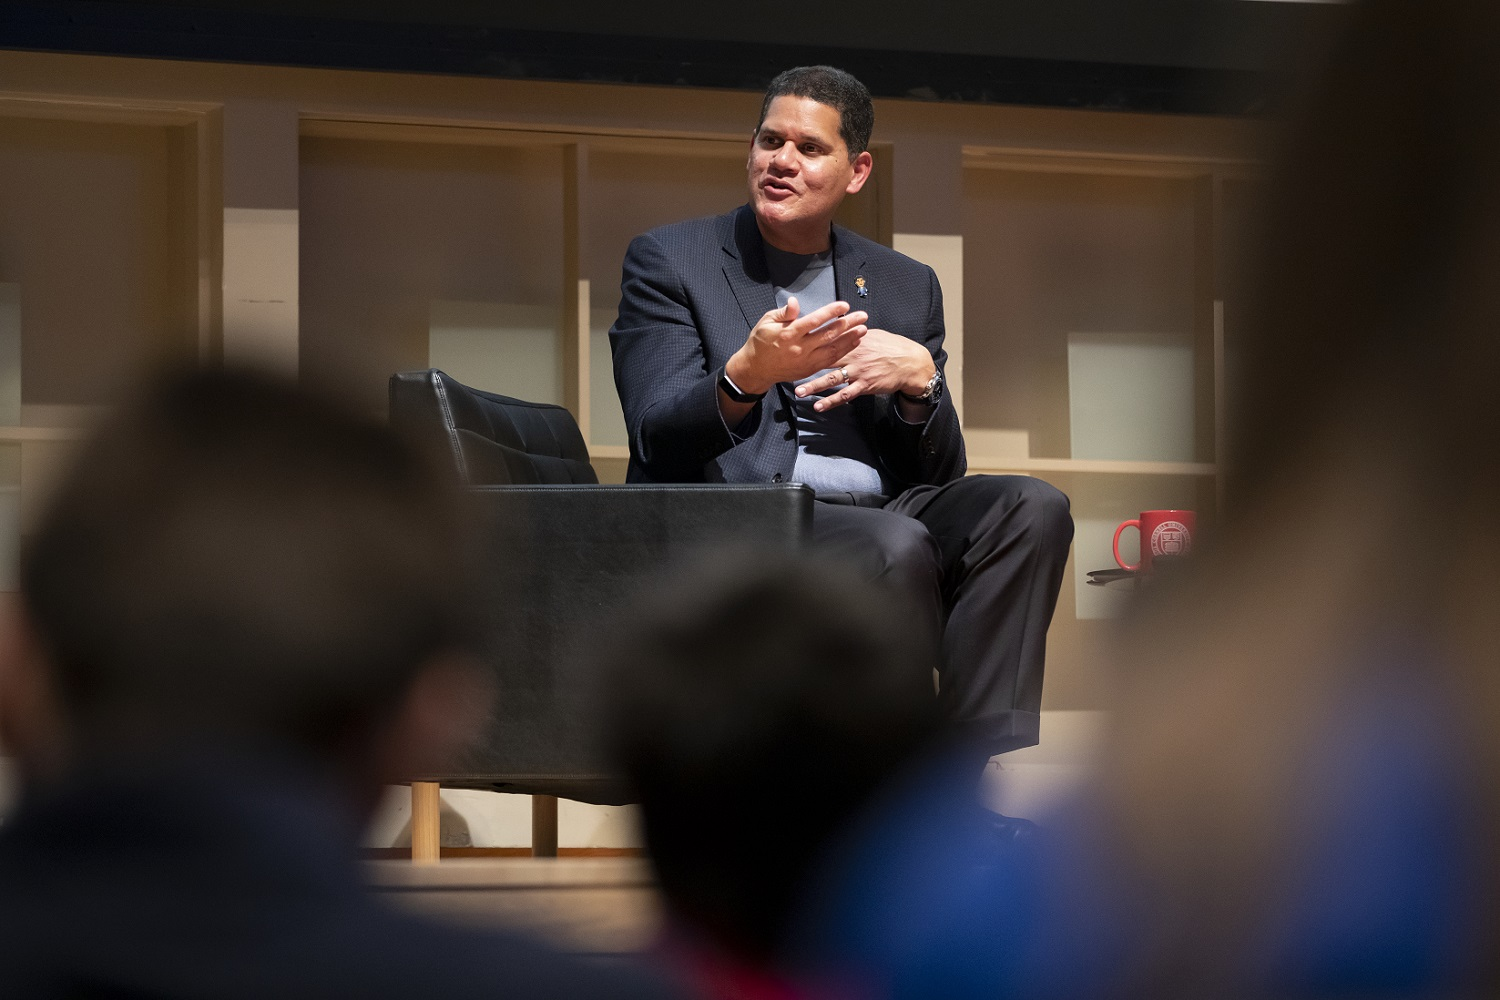 Reggie leads a discussion from on stage